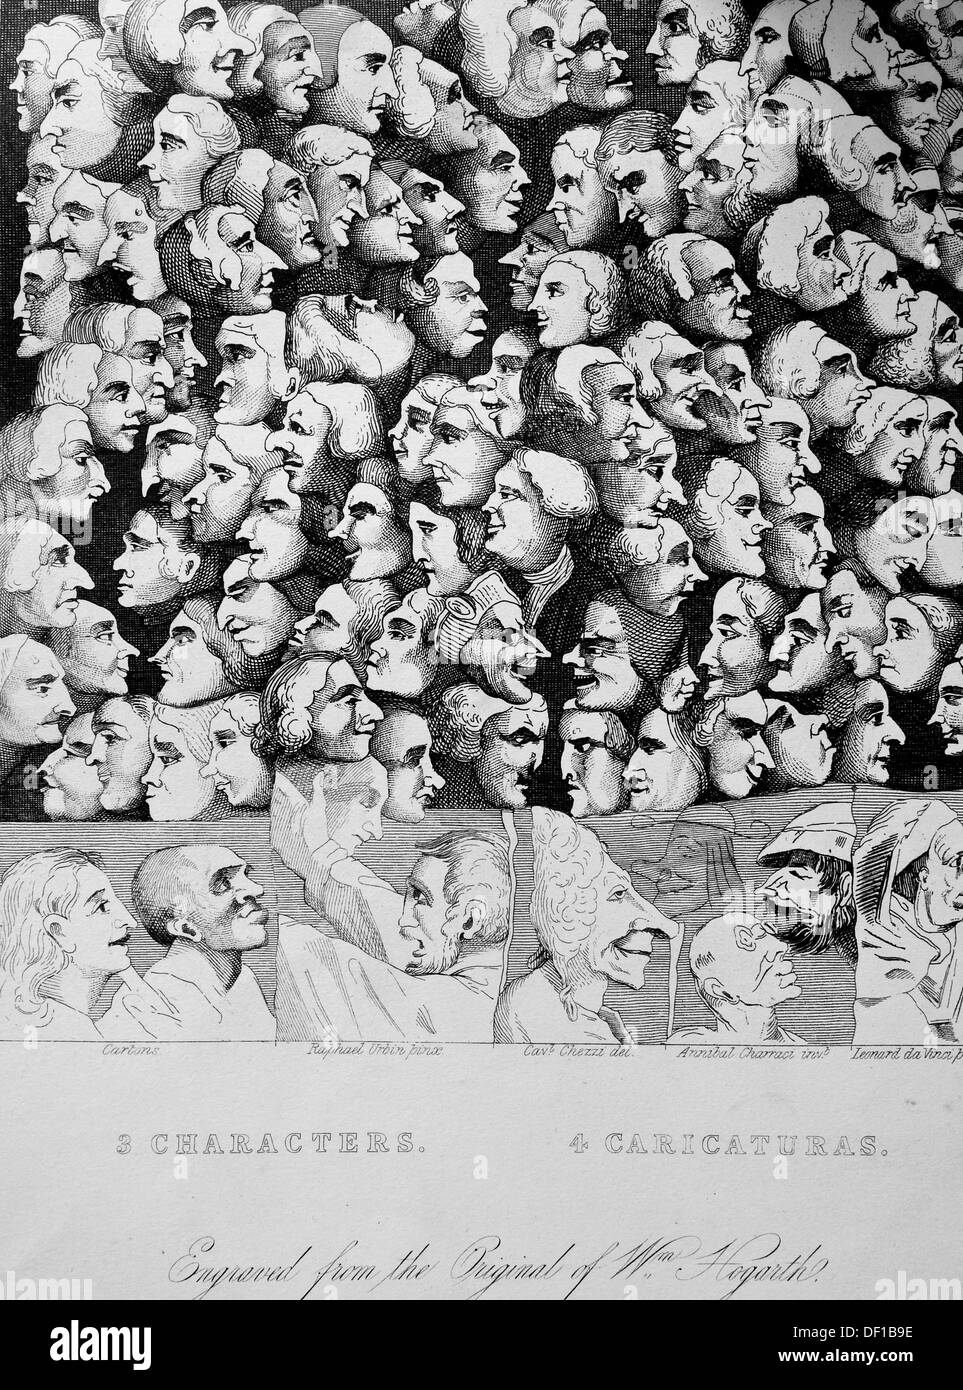 Characters and Caricatures an engraving from the original by William Hogarth. - Stock Image